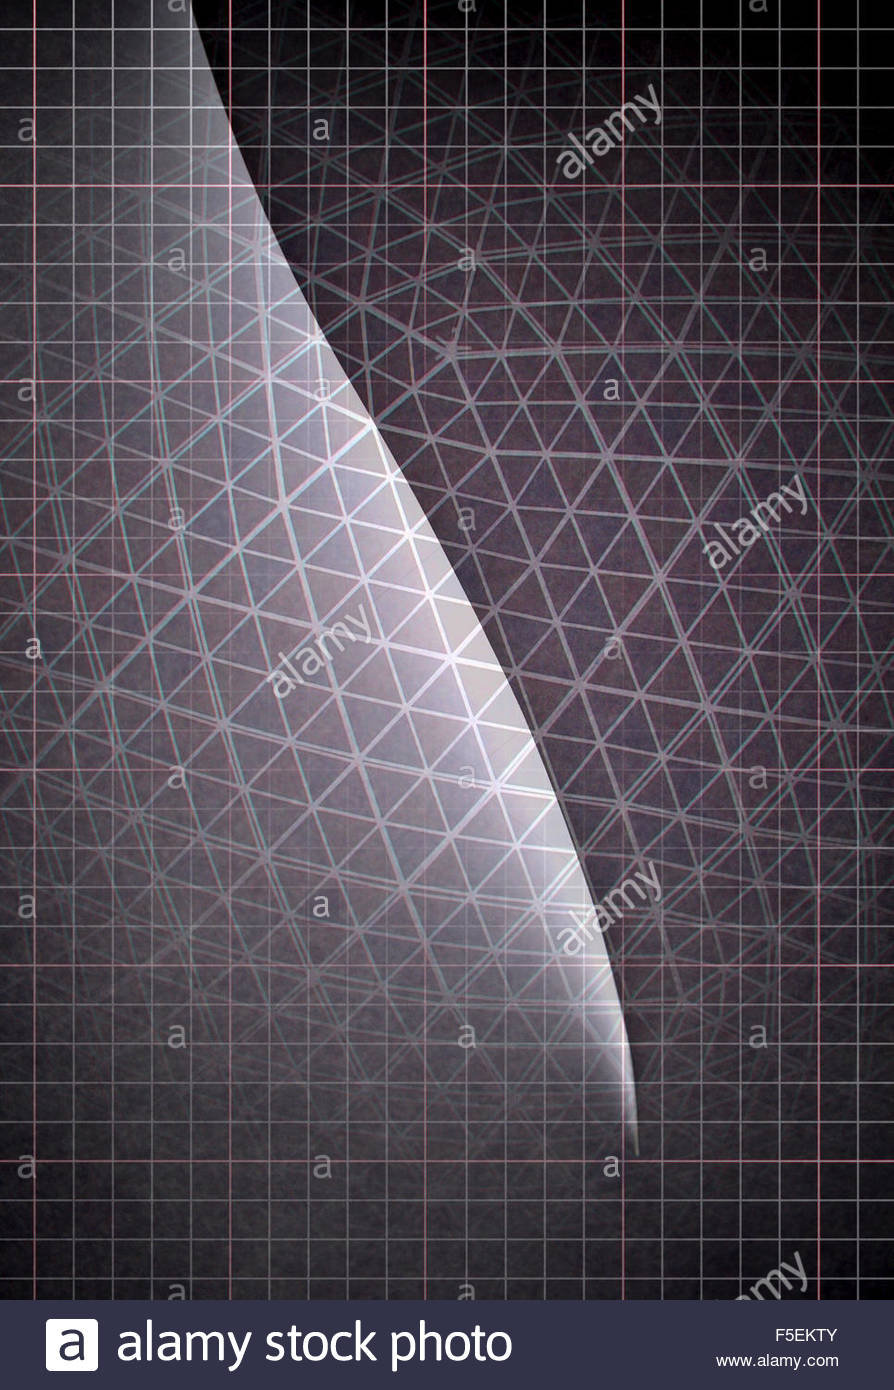 Abstract light and dark grid pattern - Stock Image